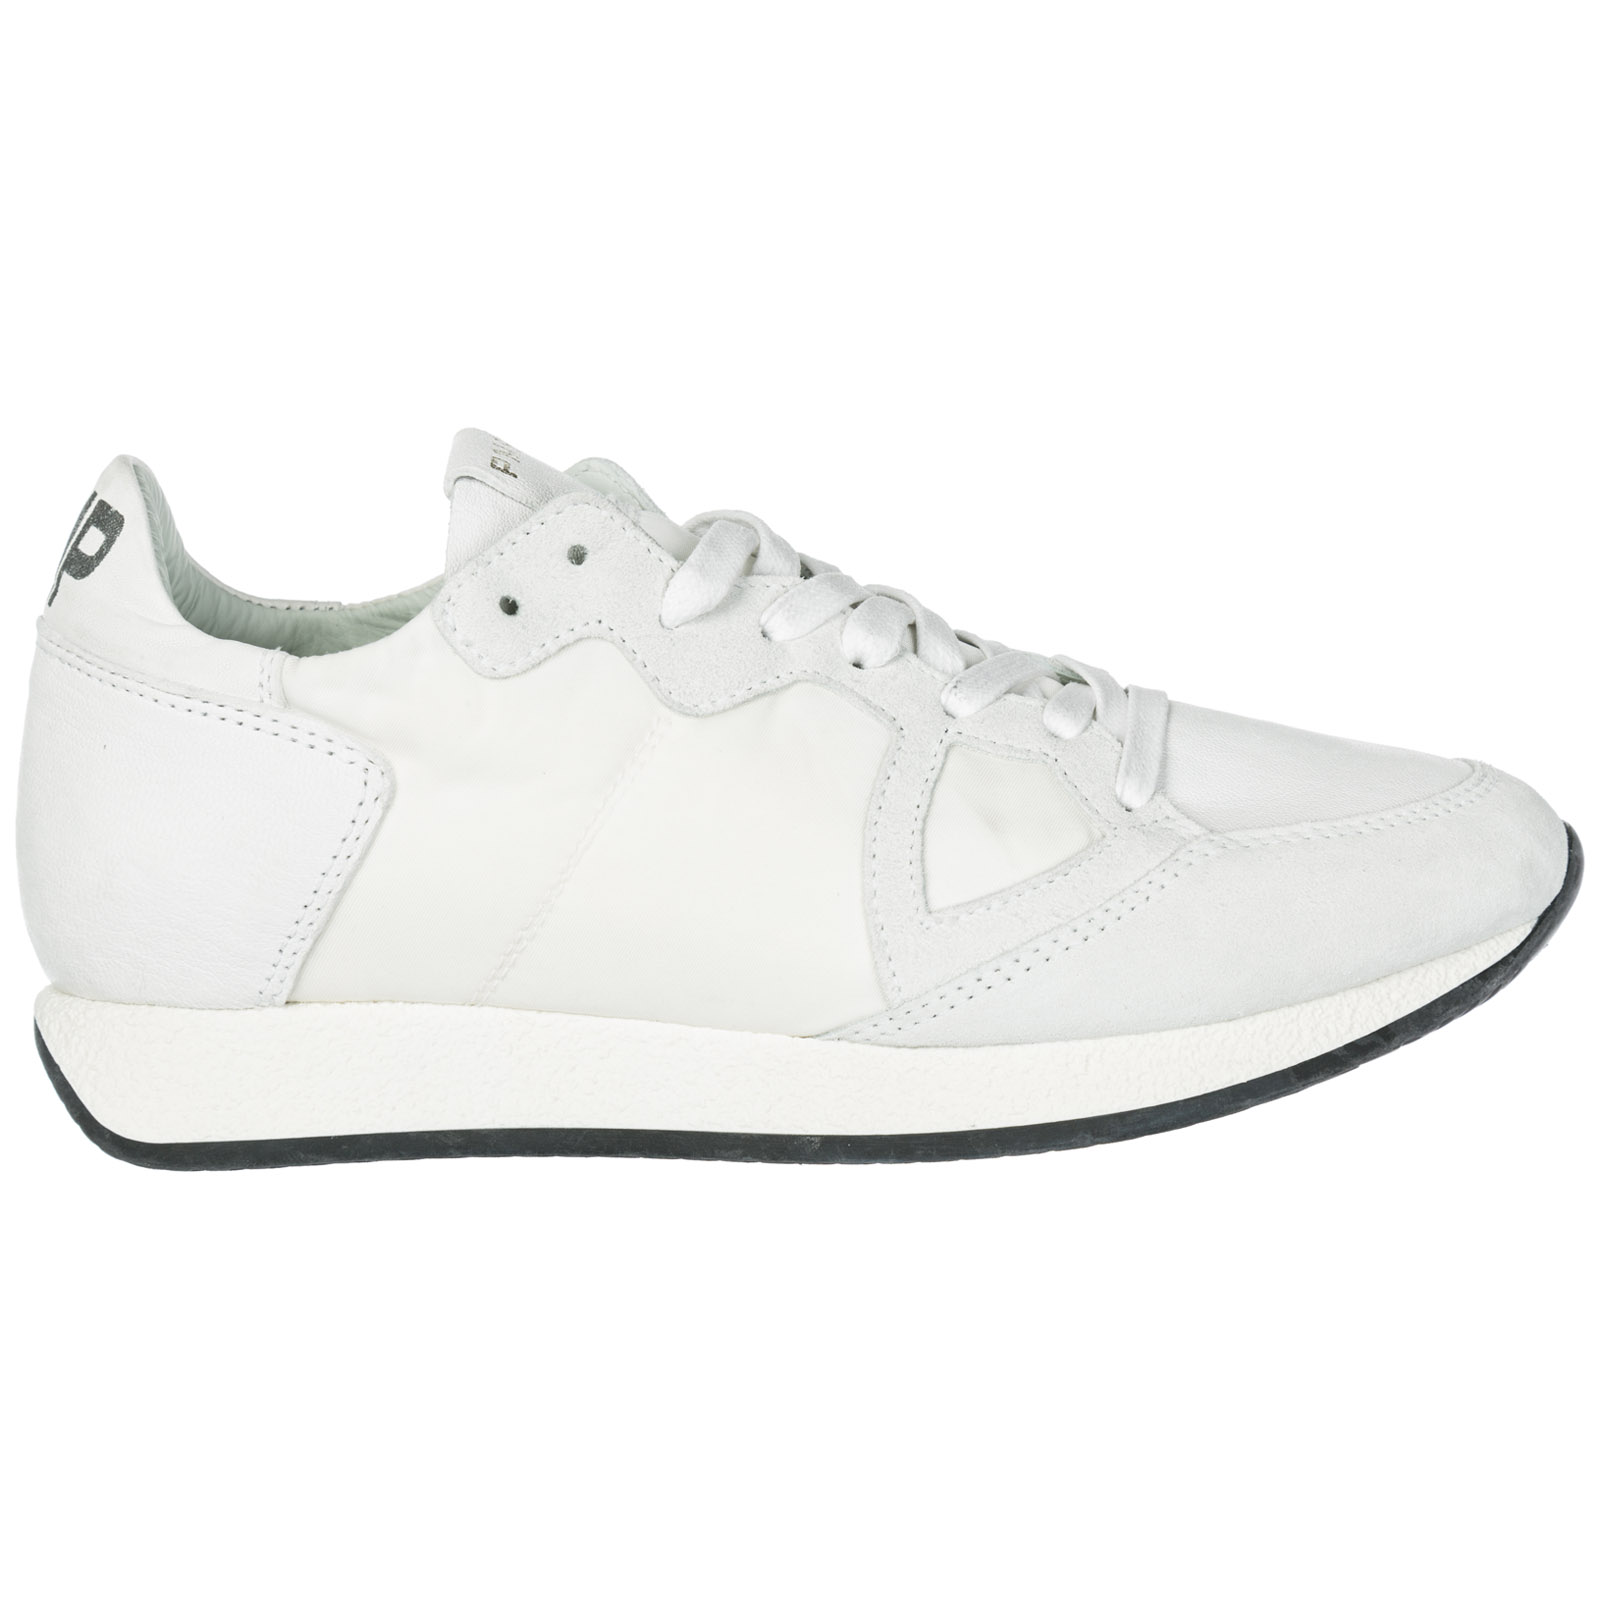 Women's shoes suede trainers sneakers monaco